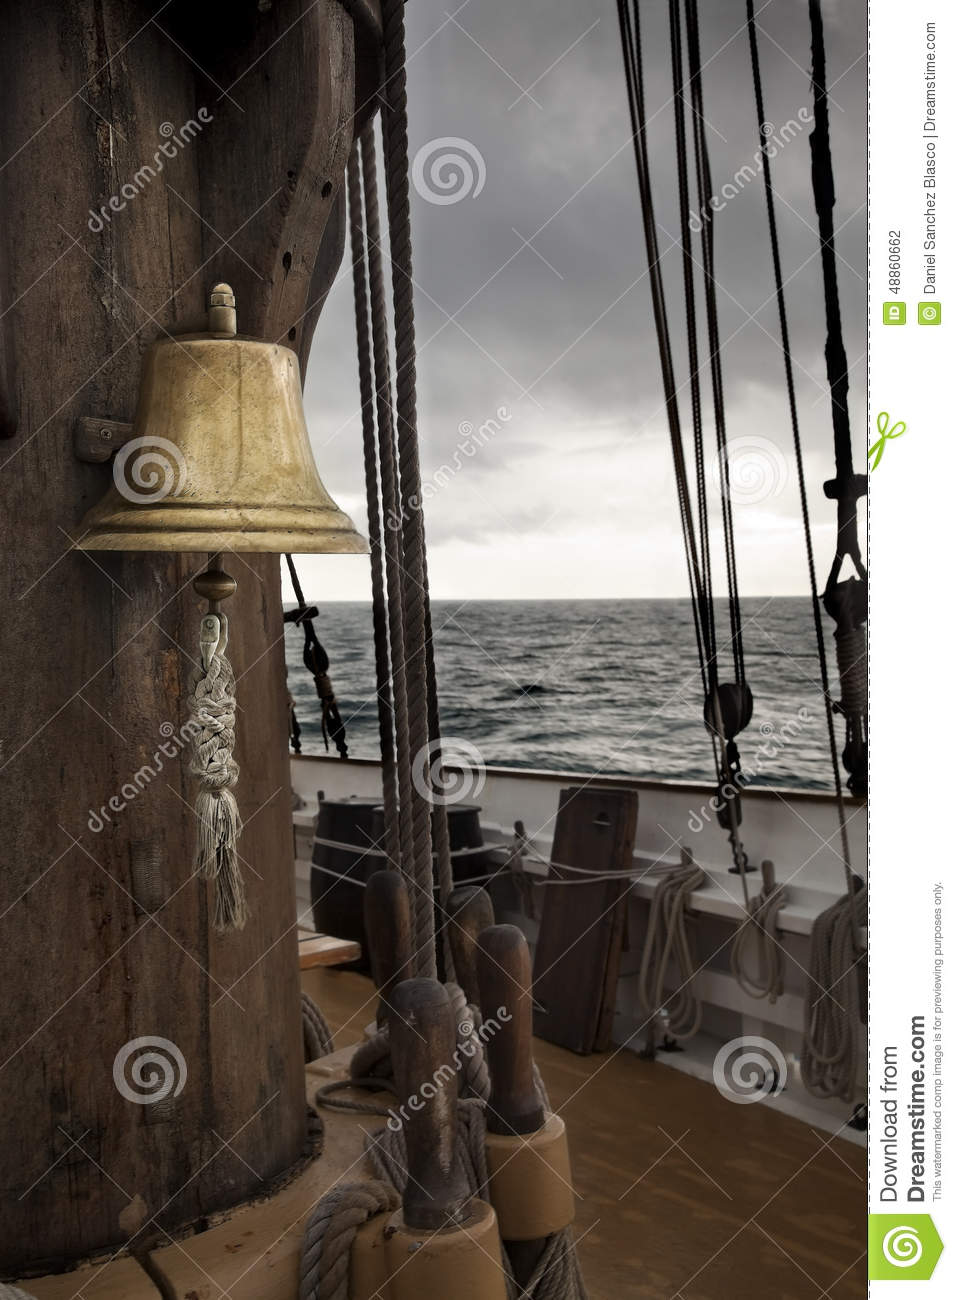 how to tell time with ship bells